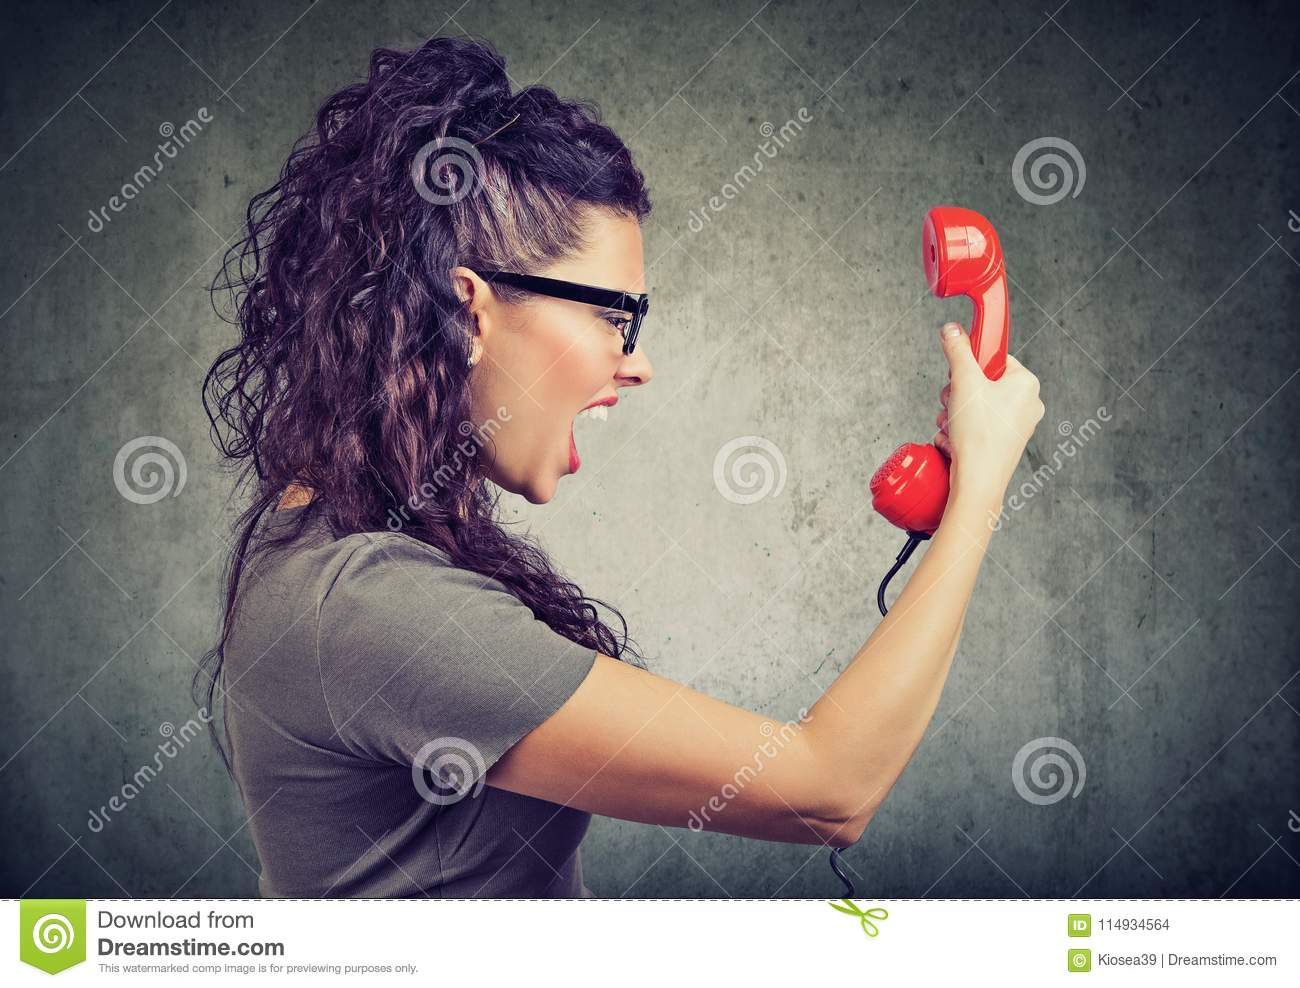 Woman holding red telephone receiver and yelling in anger.